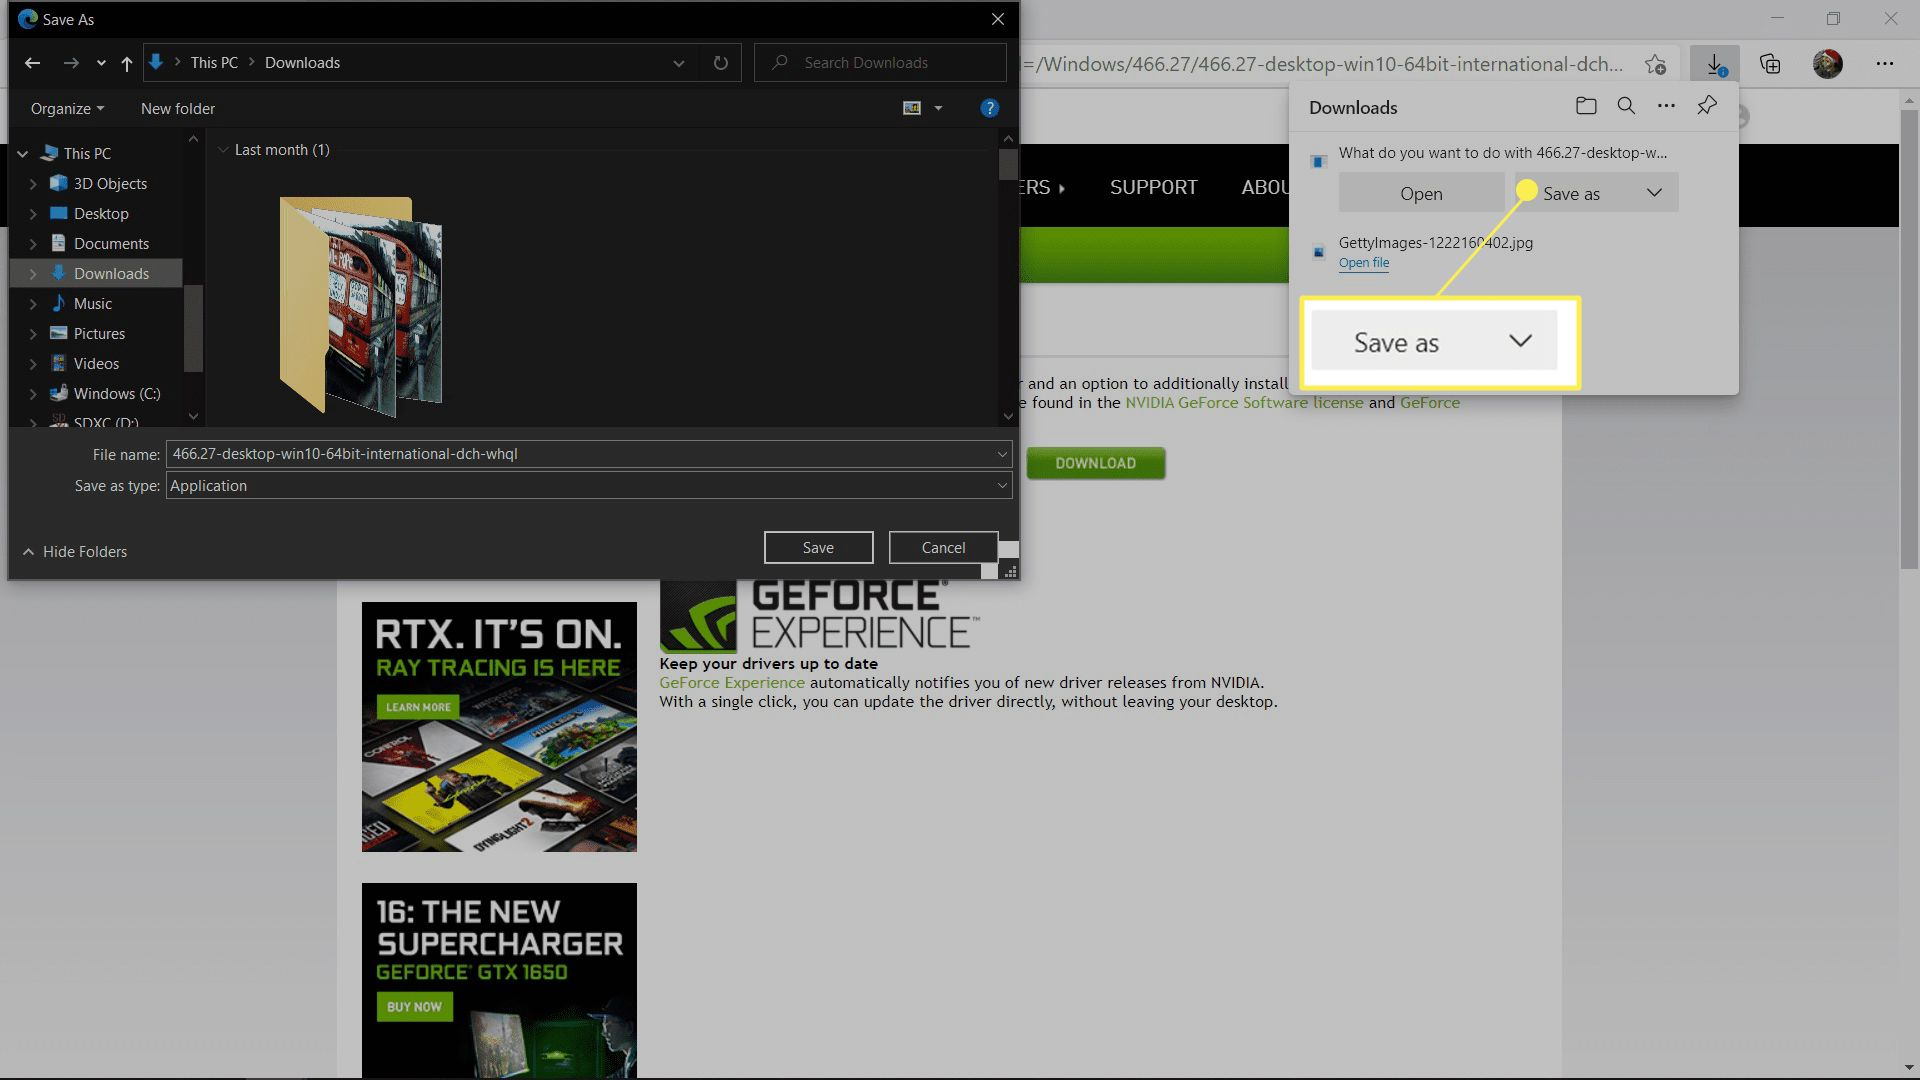 Saving an Nvidia driver with Save as highlighted